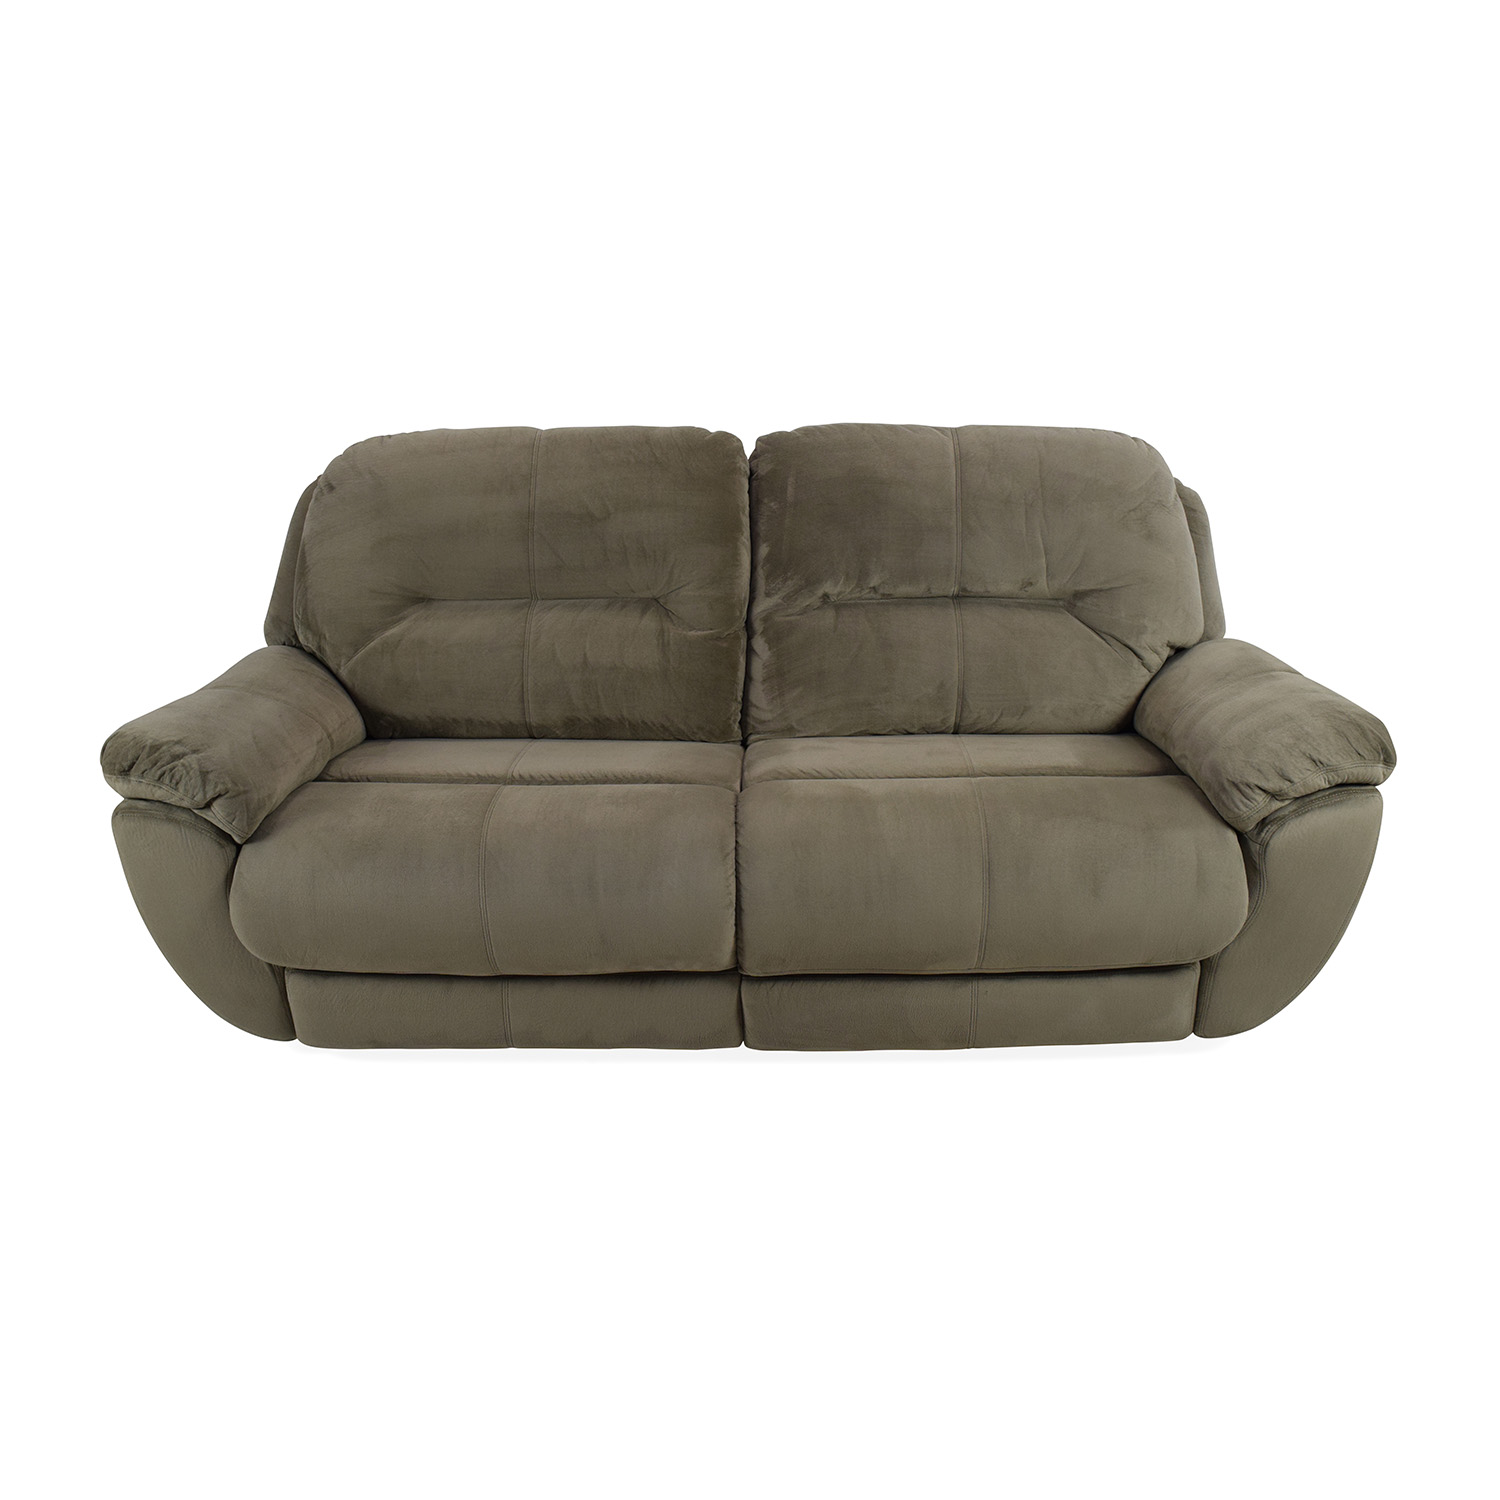 buy Kathy Ireland Home Quinn Power-Reclining Sofa Kathy Ireland Home by Raymour and Flanigan Classic Sofas